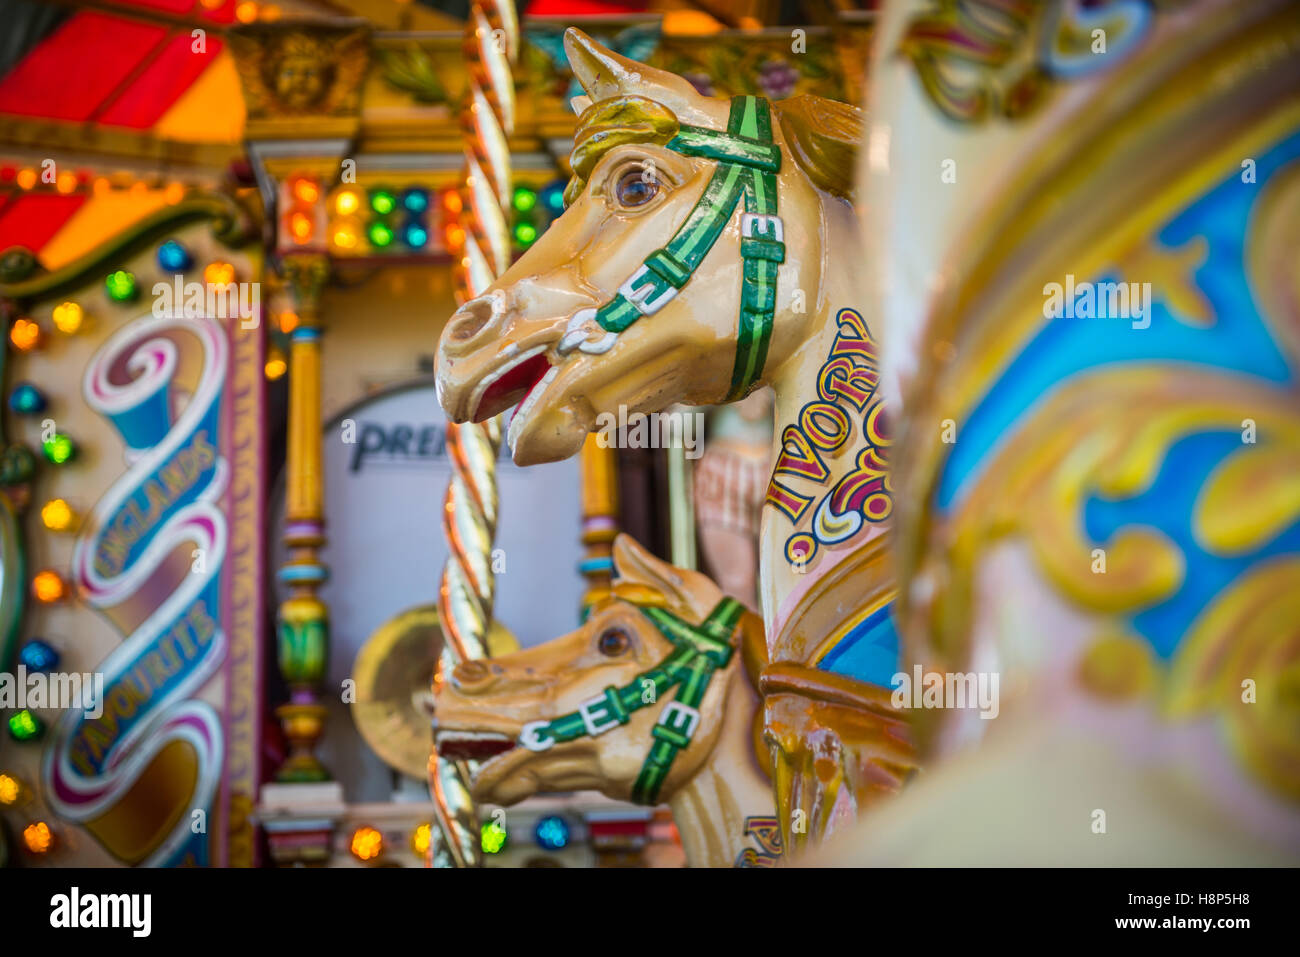 England, Yorkshire - Fair organs (carousel) being shown at the Masham Steam Rally, an antique show for old tractors, - Stock Image